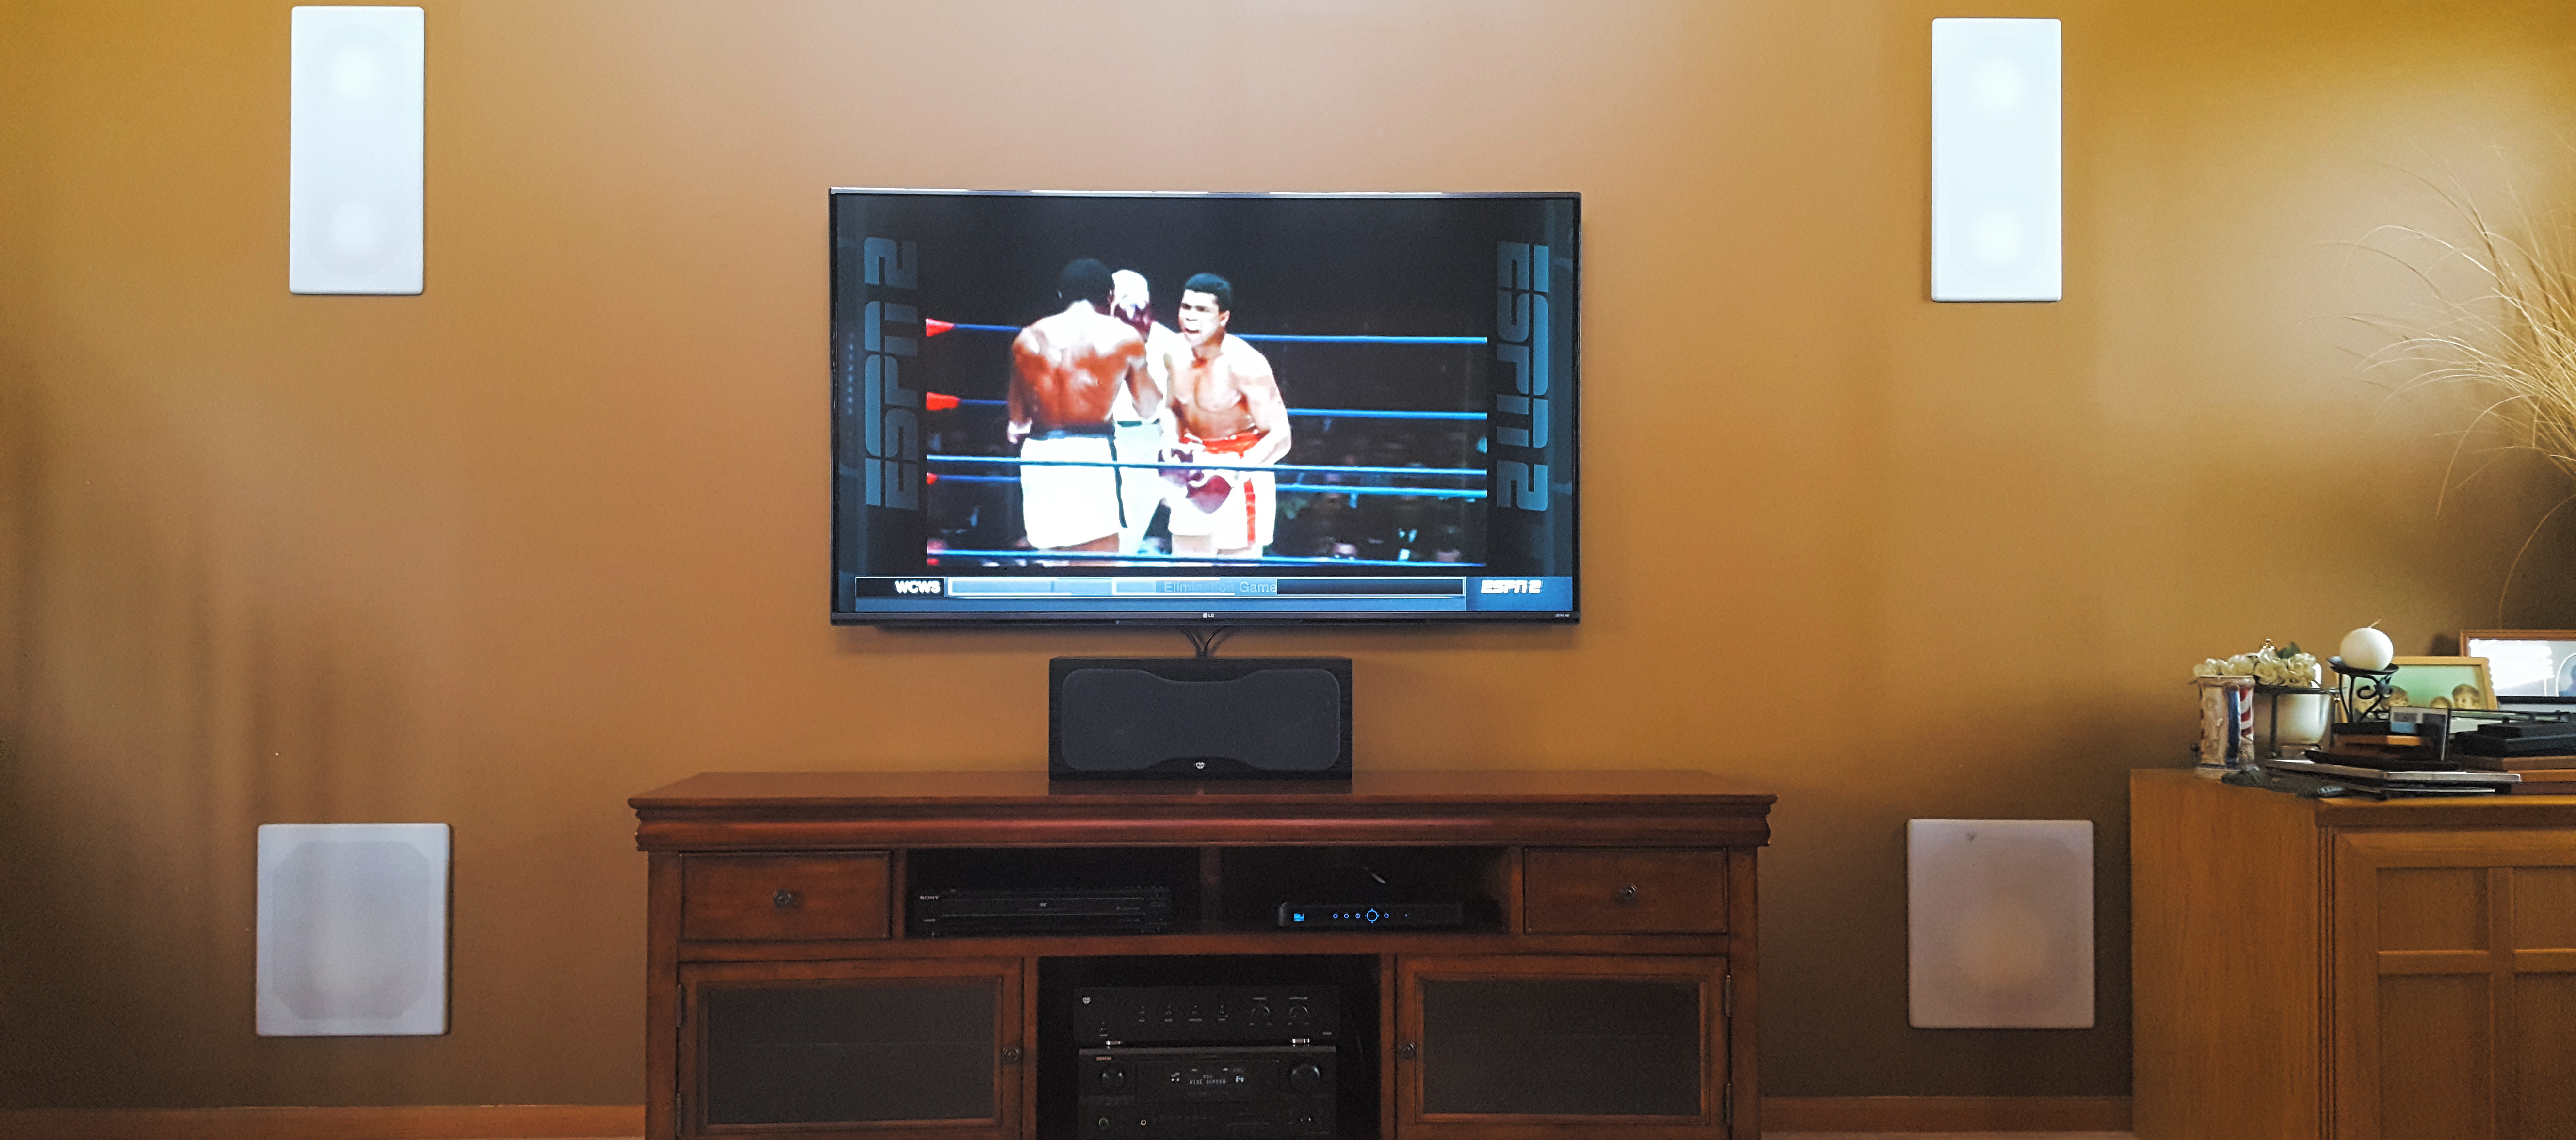 Custom Tv Wiring Home Just Another Diagram Blog Entertainment Center Toton S Installation Theater Automation Rh Totonstv Com Direct Guide